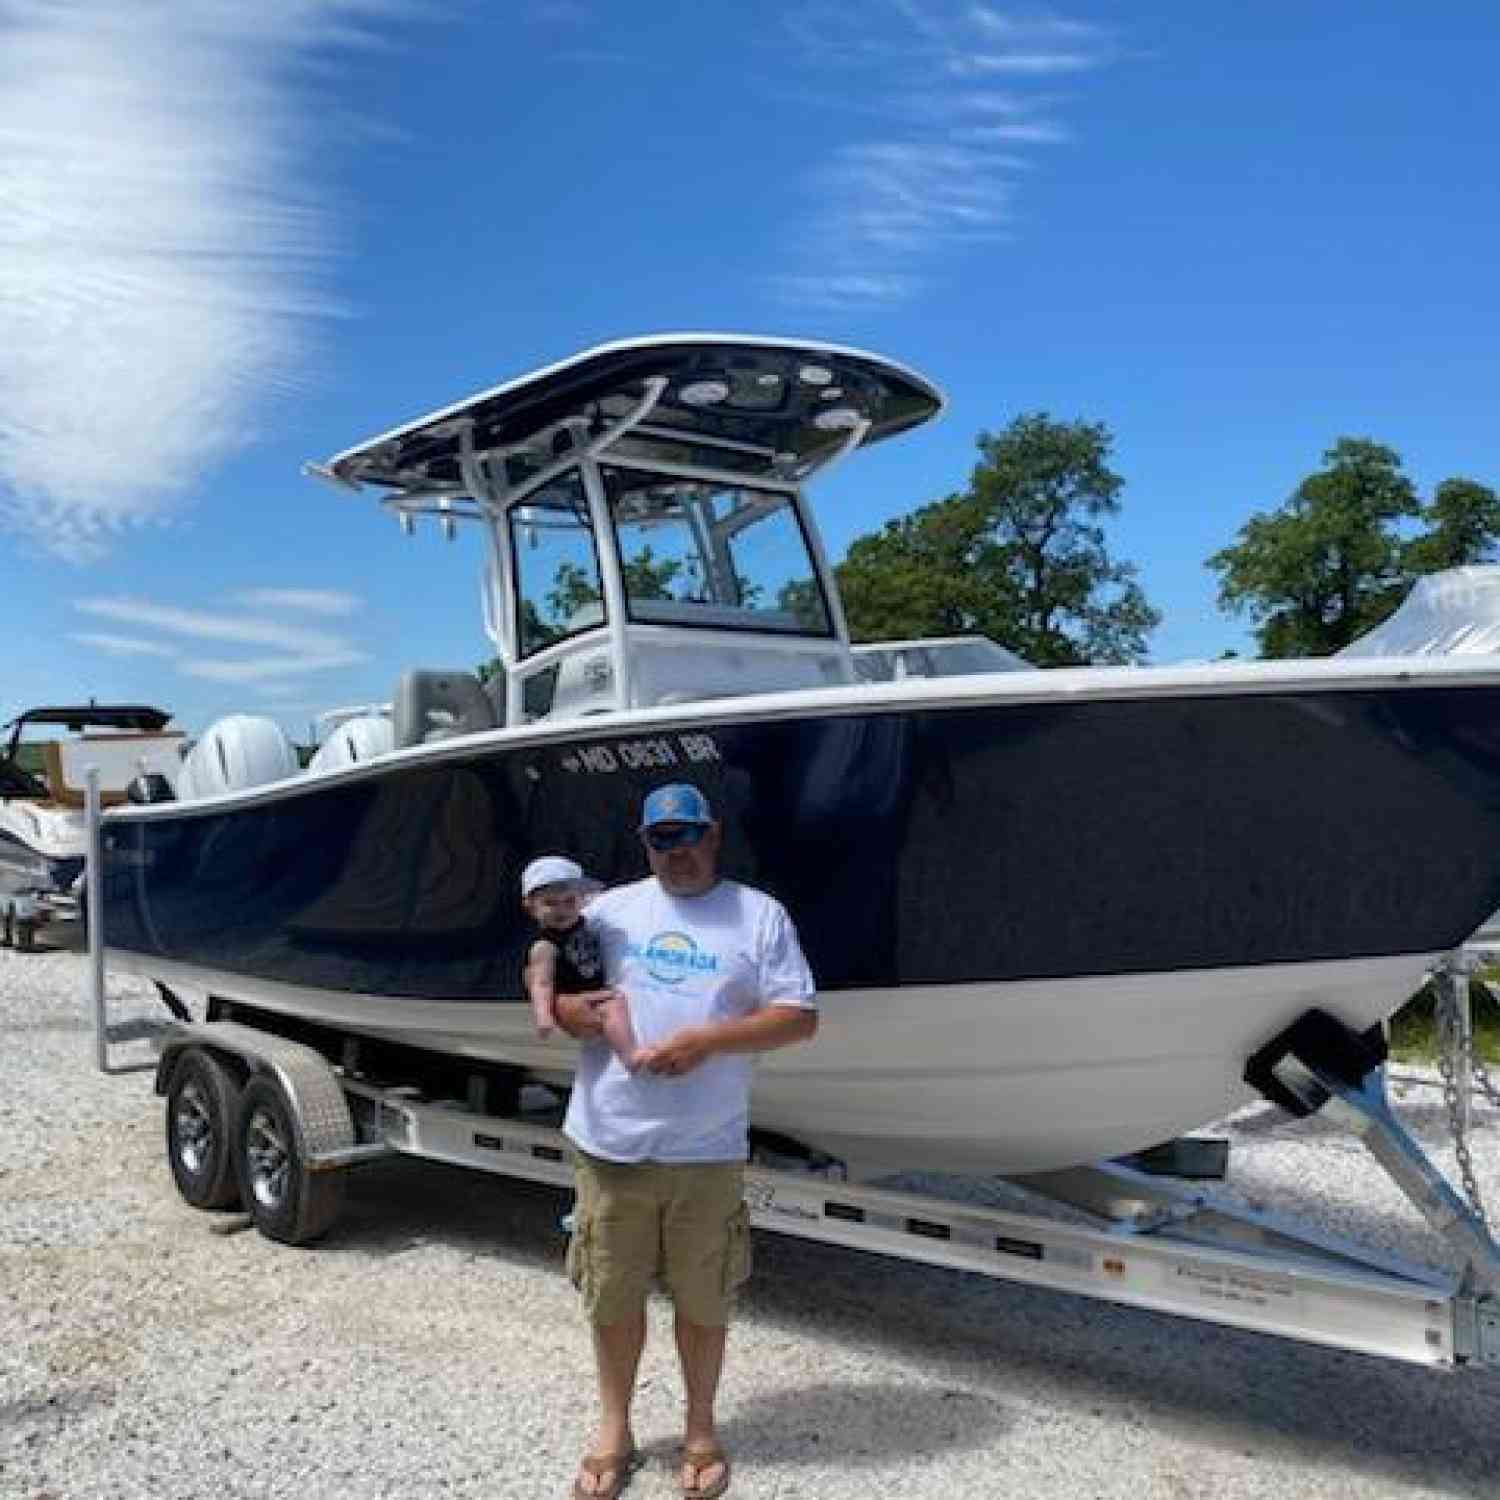 Title: Firs week home with the new boat - On board their Sportsman Open 252 Center Console - Location: Kent island ,MD. Participating in the Photo Contest #SportsmanJune2020